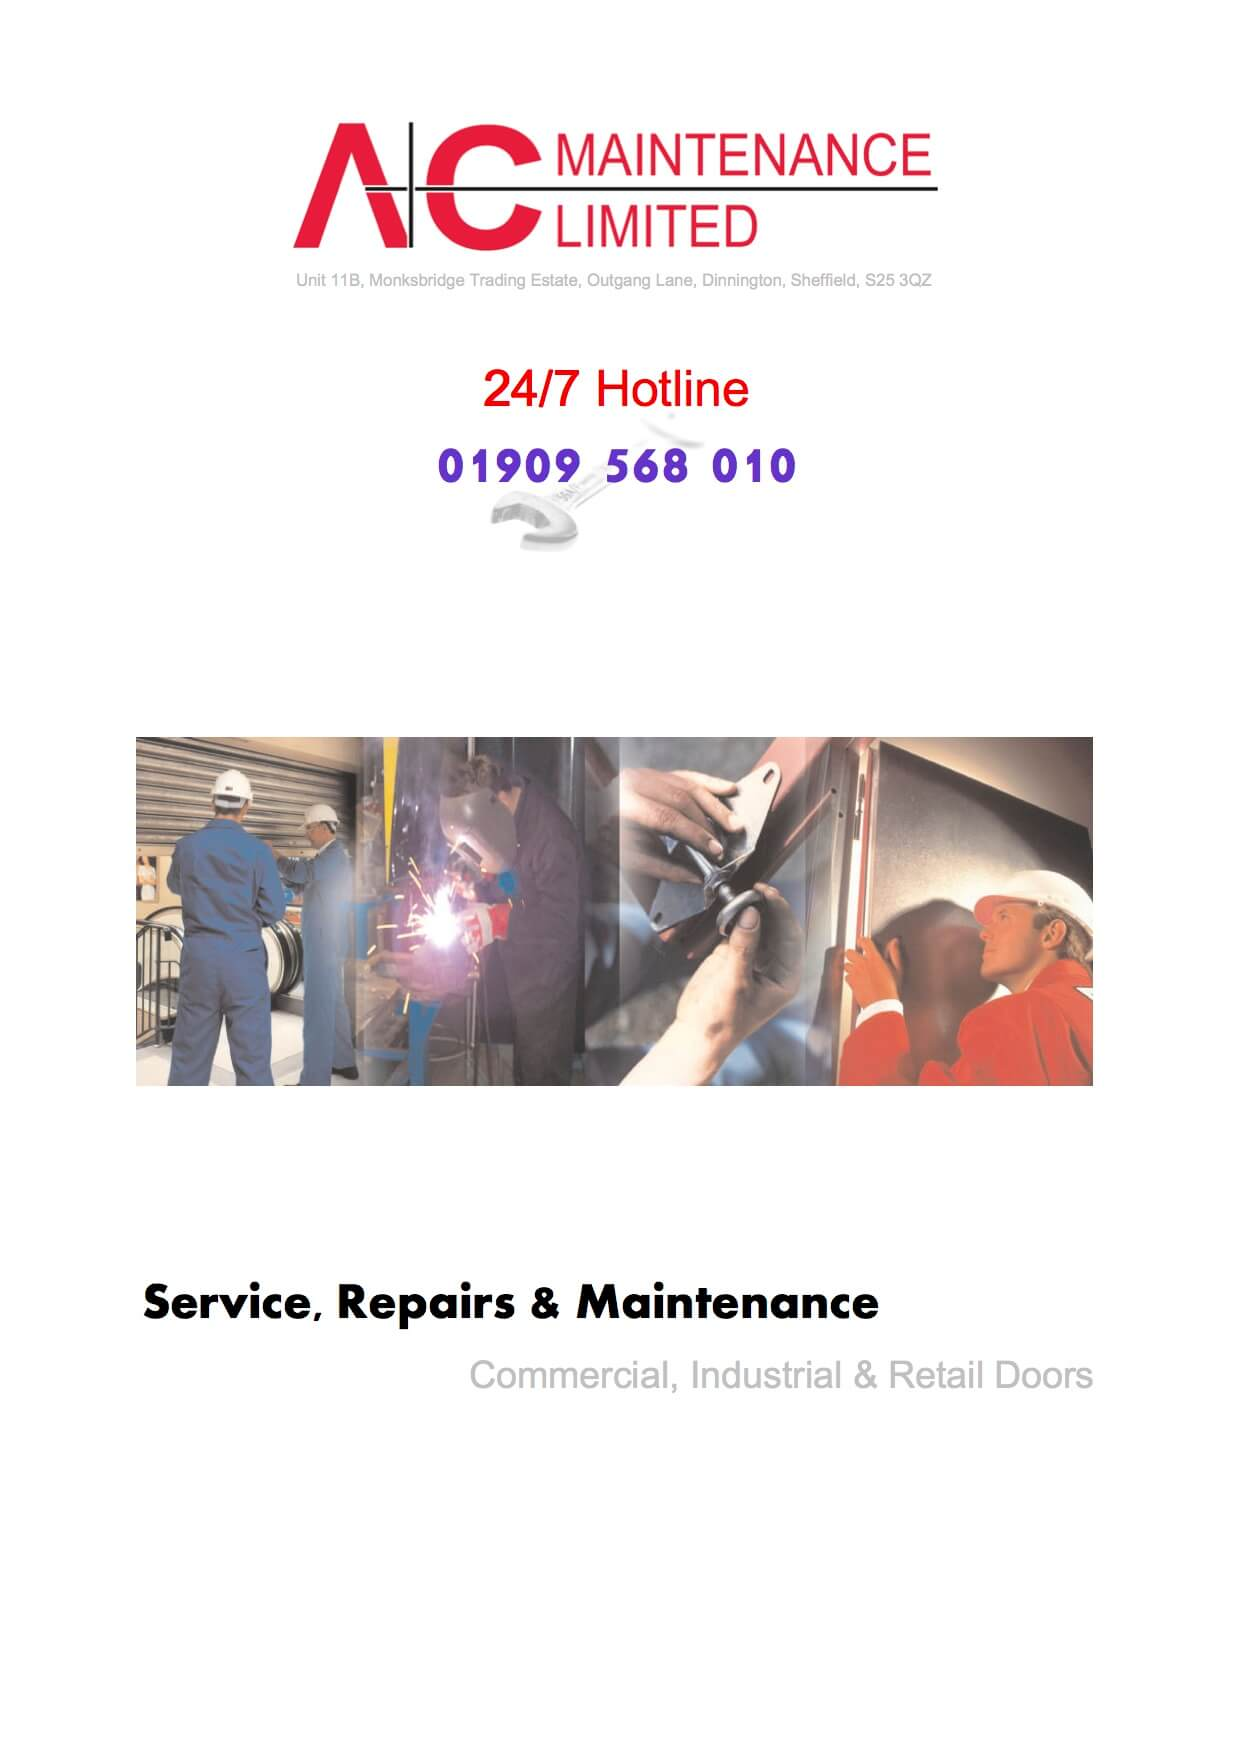 http://www.aandcmaintenance.co.uk/wp-content/uploads/AC_Service-Repairs.jpg